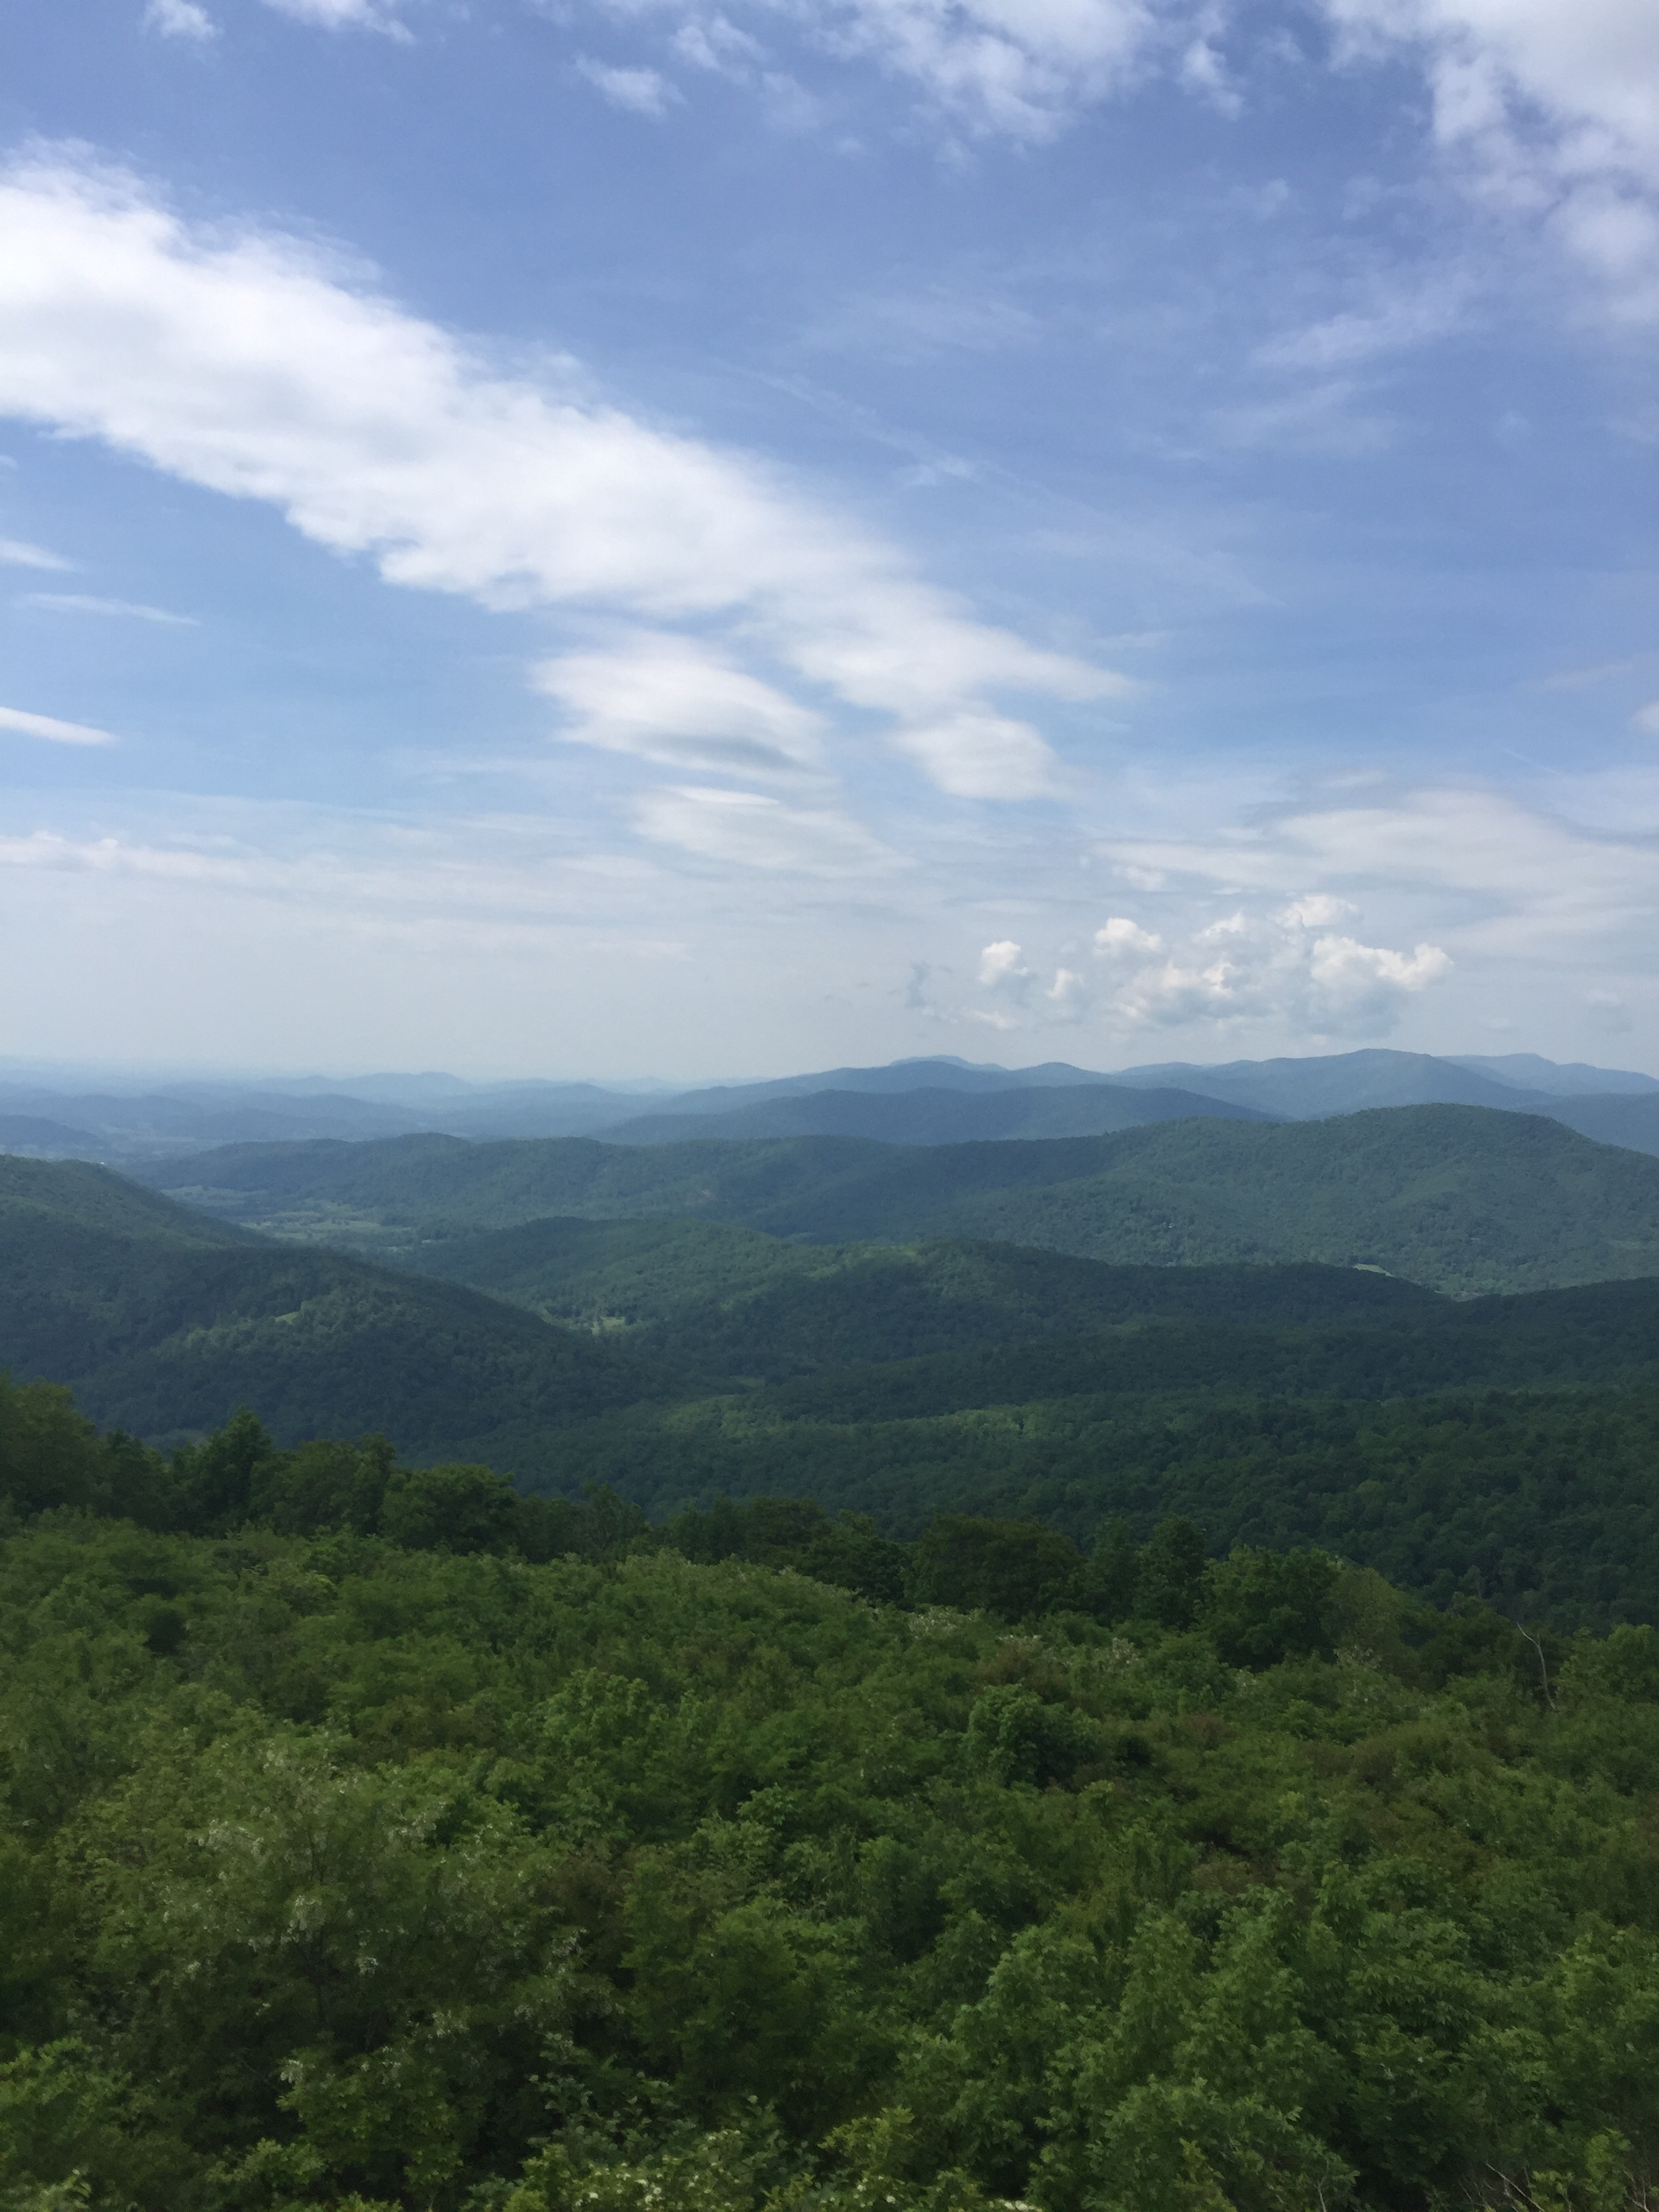 View of the Appalachian Mountains at Shenandoah National Park, about 25 miles from Oak Spring.